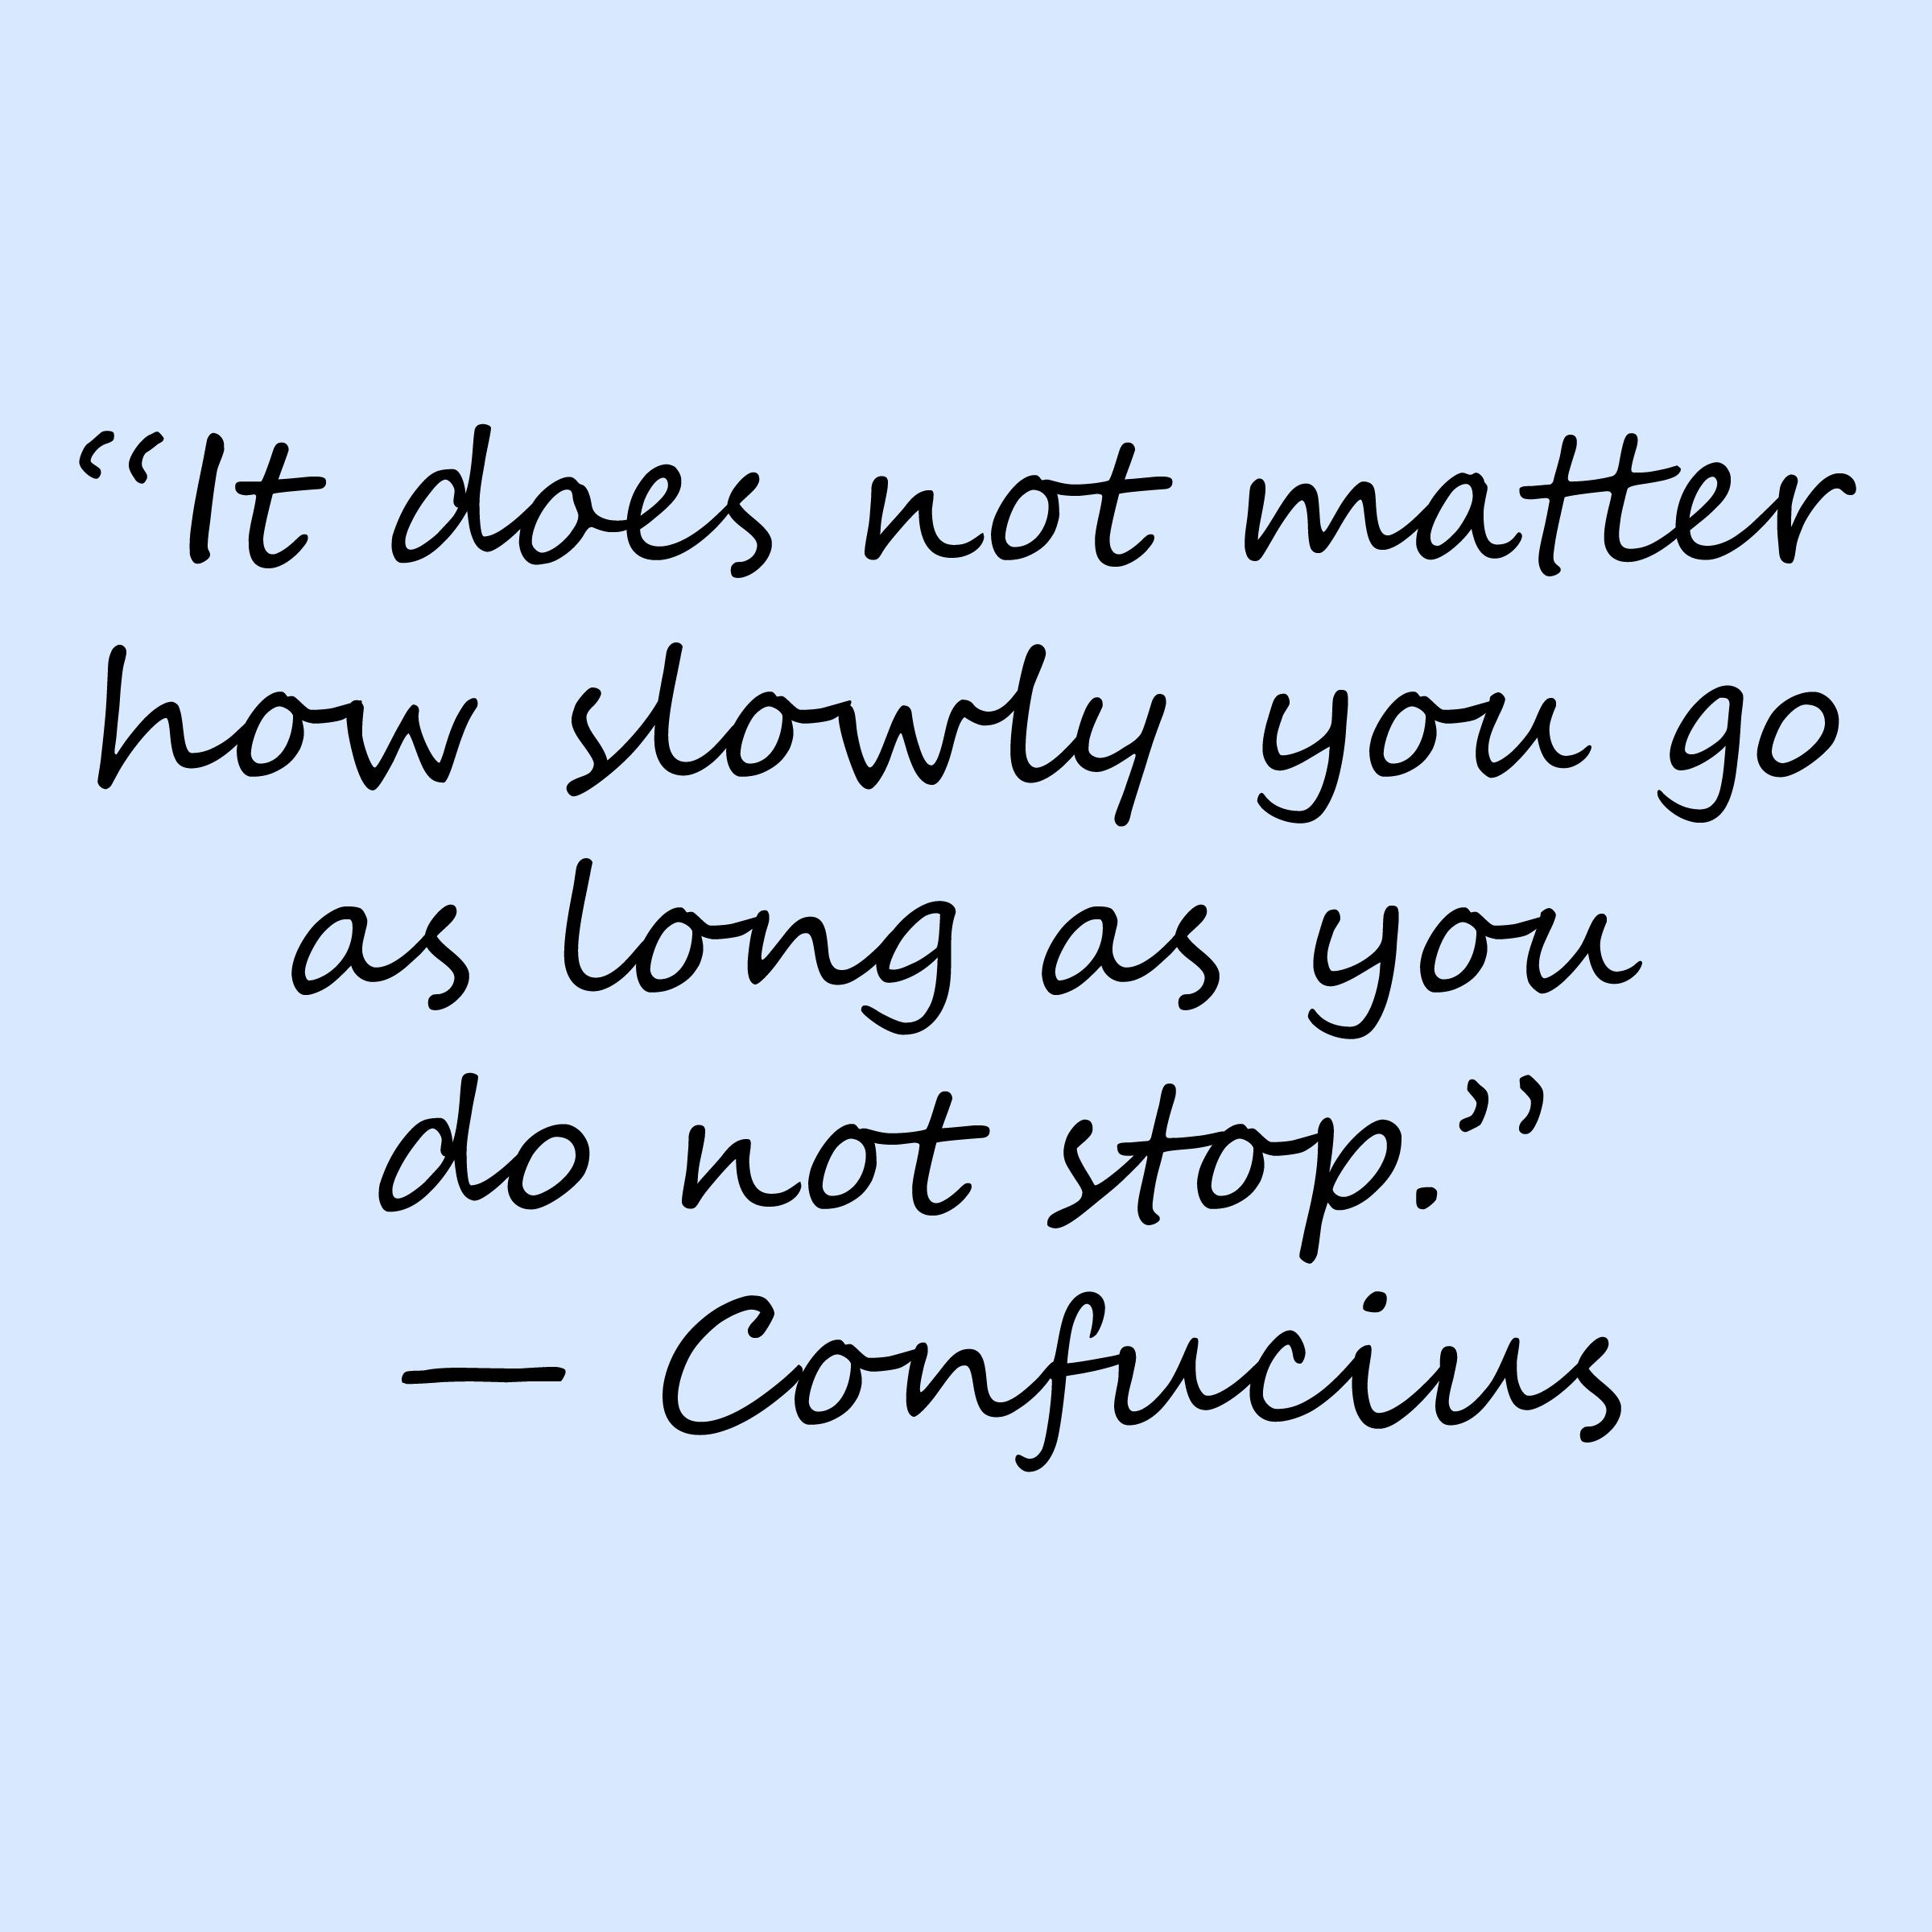 Inspirational Quotes On Pinterest: #inspirational #quote #life #motivational Keep Going